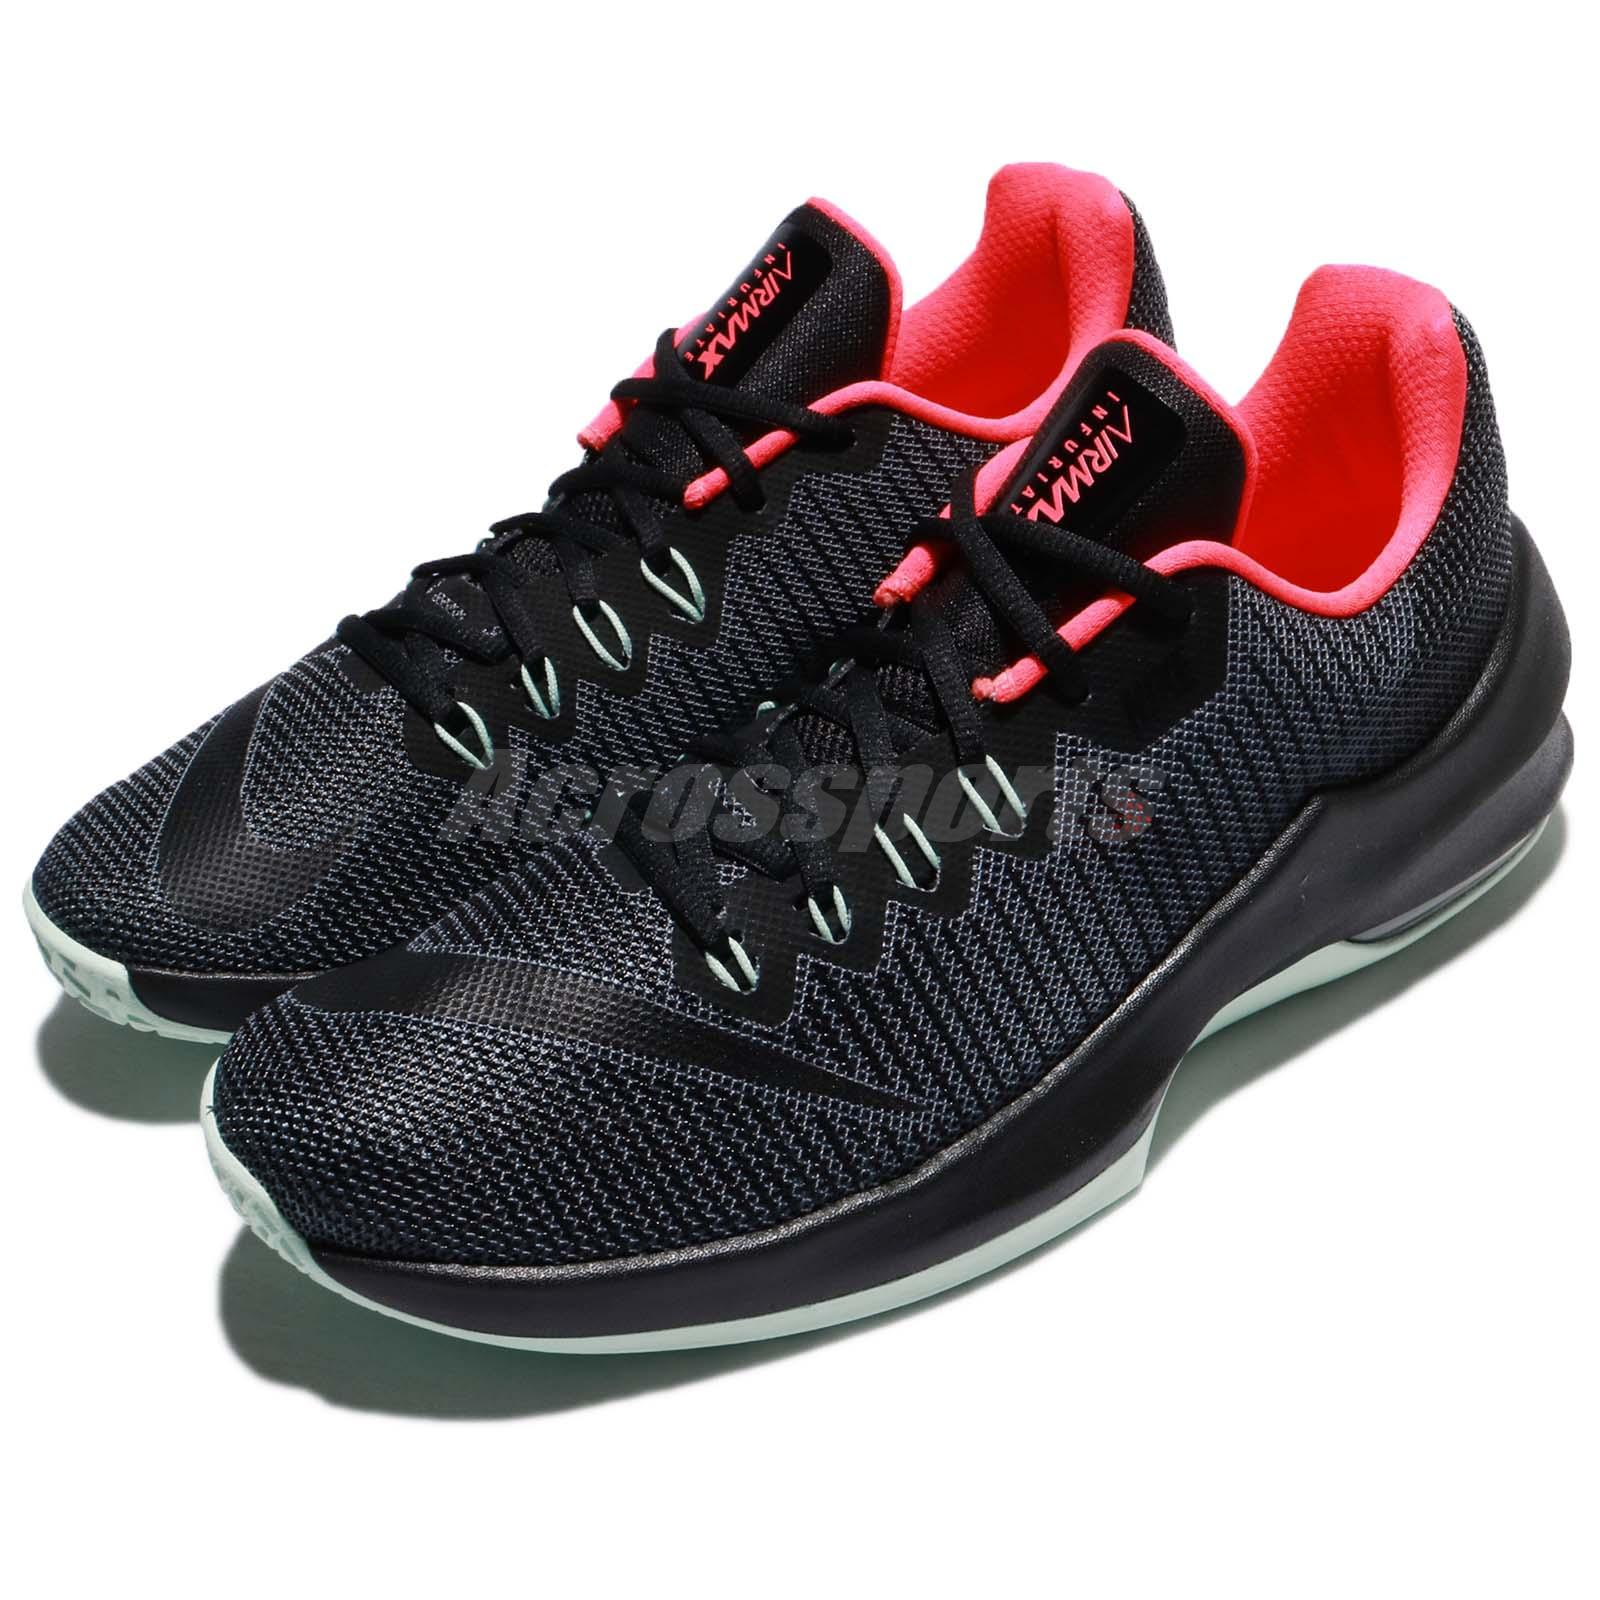 16a9aef7b42f Details about Nike Air Max Infuriate 2 Low EP II Black Mint Men Basketball  Shoes 908977-006